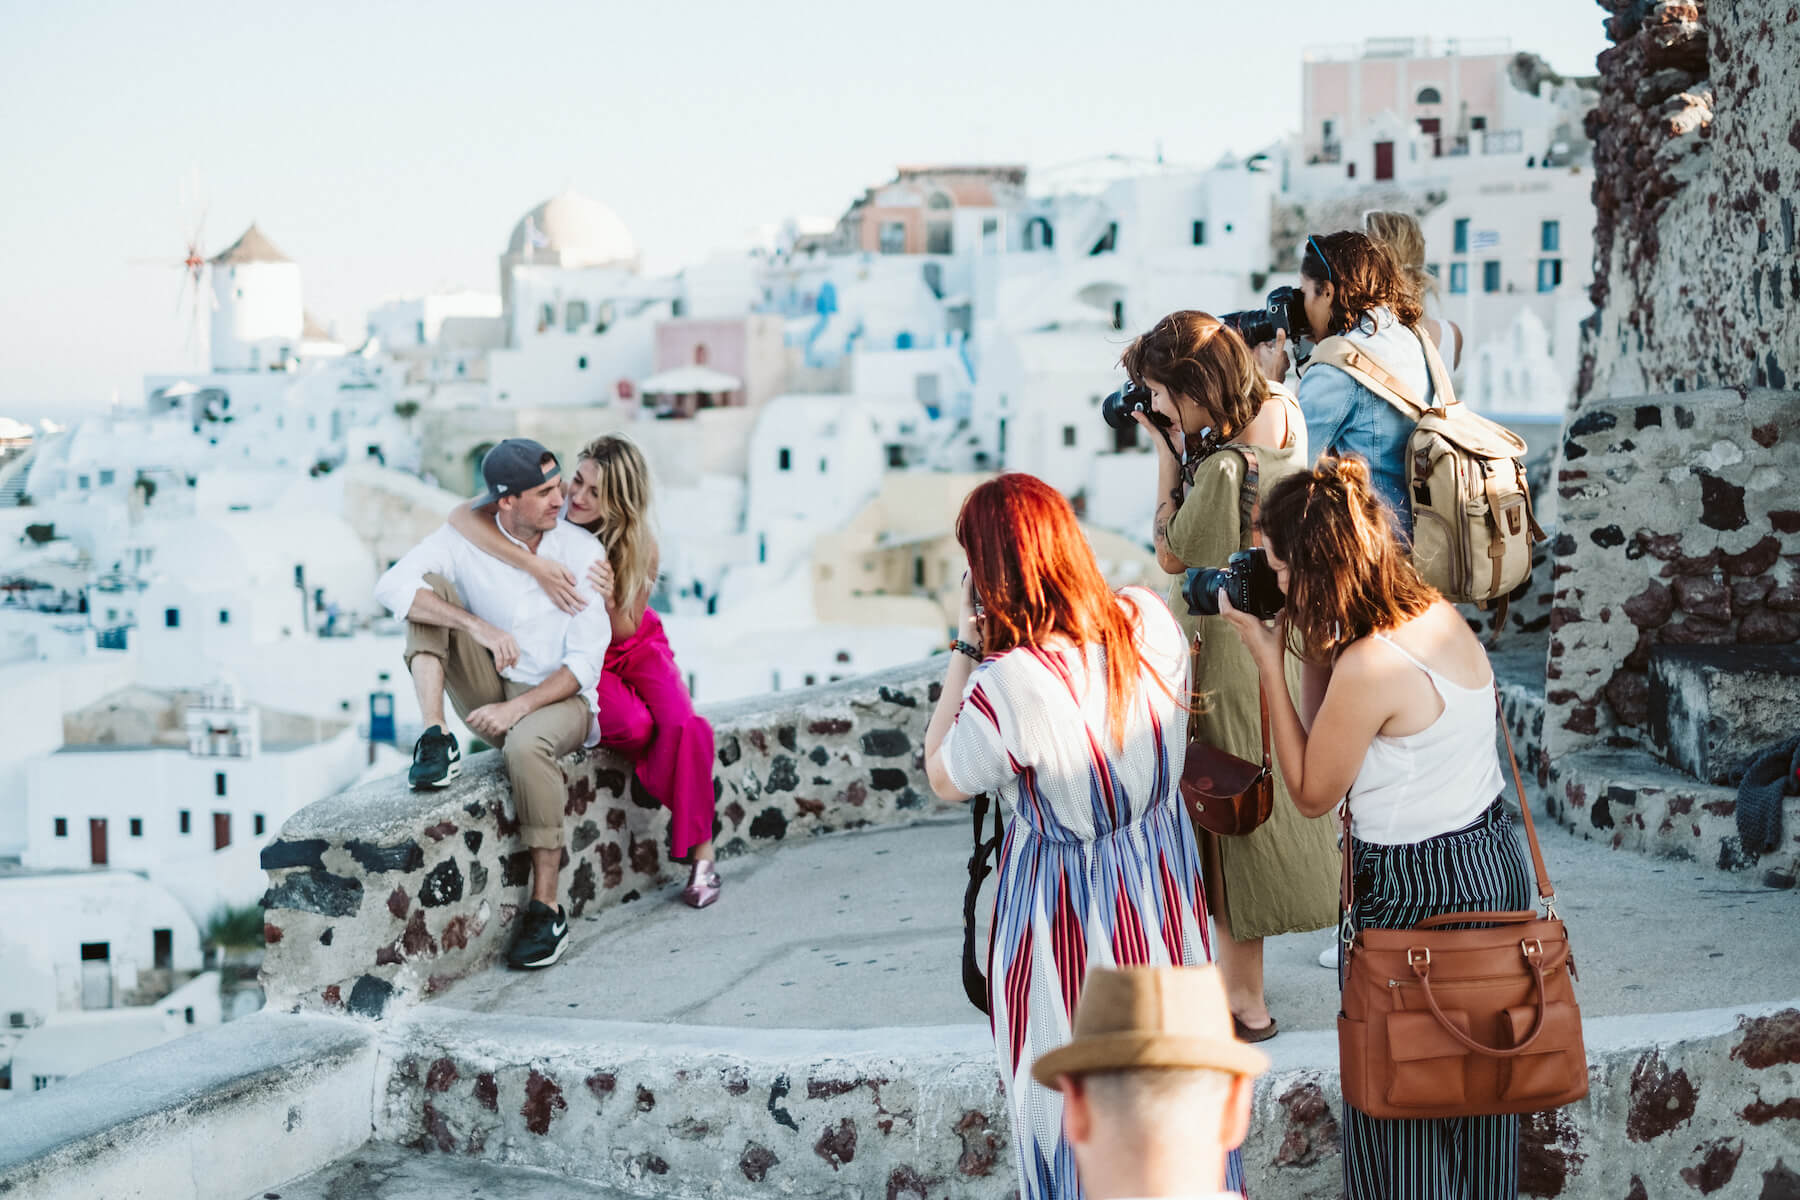 Photographers taking a photo of a couple in Santorini, Greece.